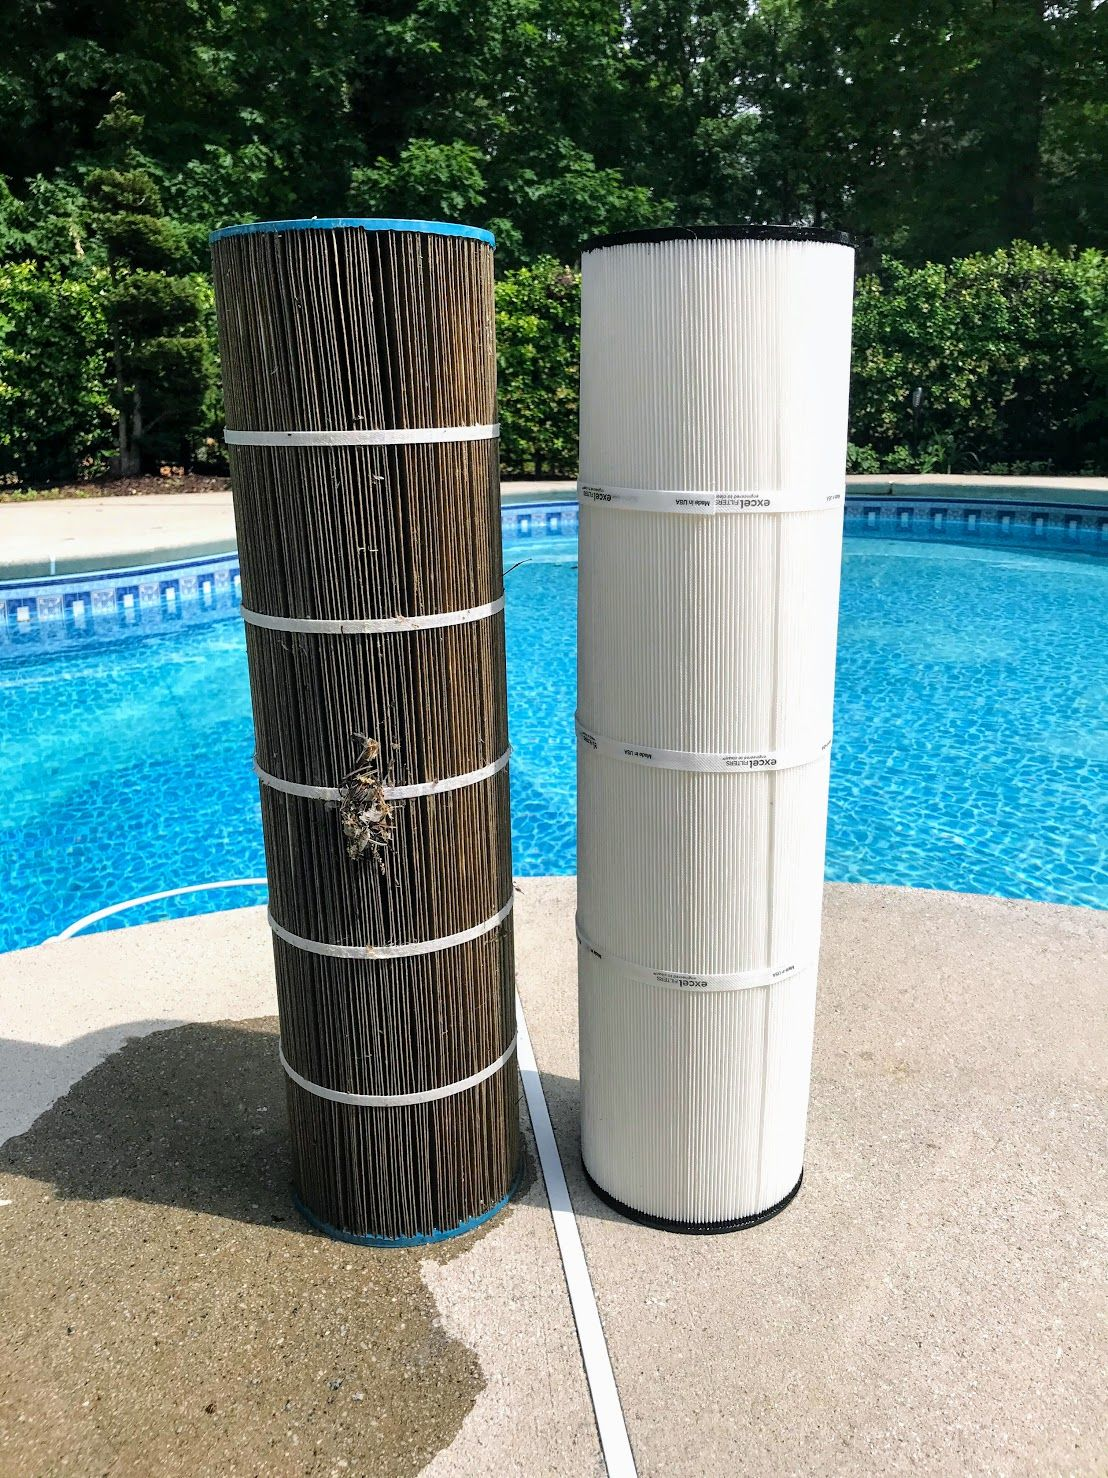 Swimming Pool Maintenance Guide Tips And Tricks By Real Pool Owners In 2020 Swimming Pool Maintenance Pool Maintenance Pool Filters